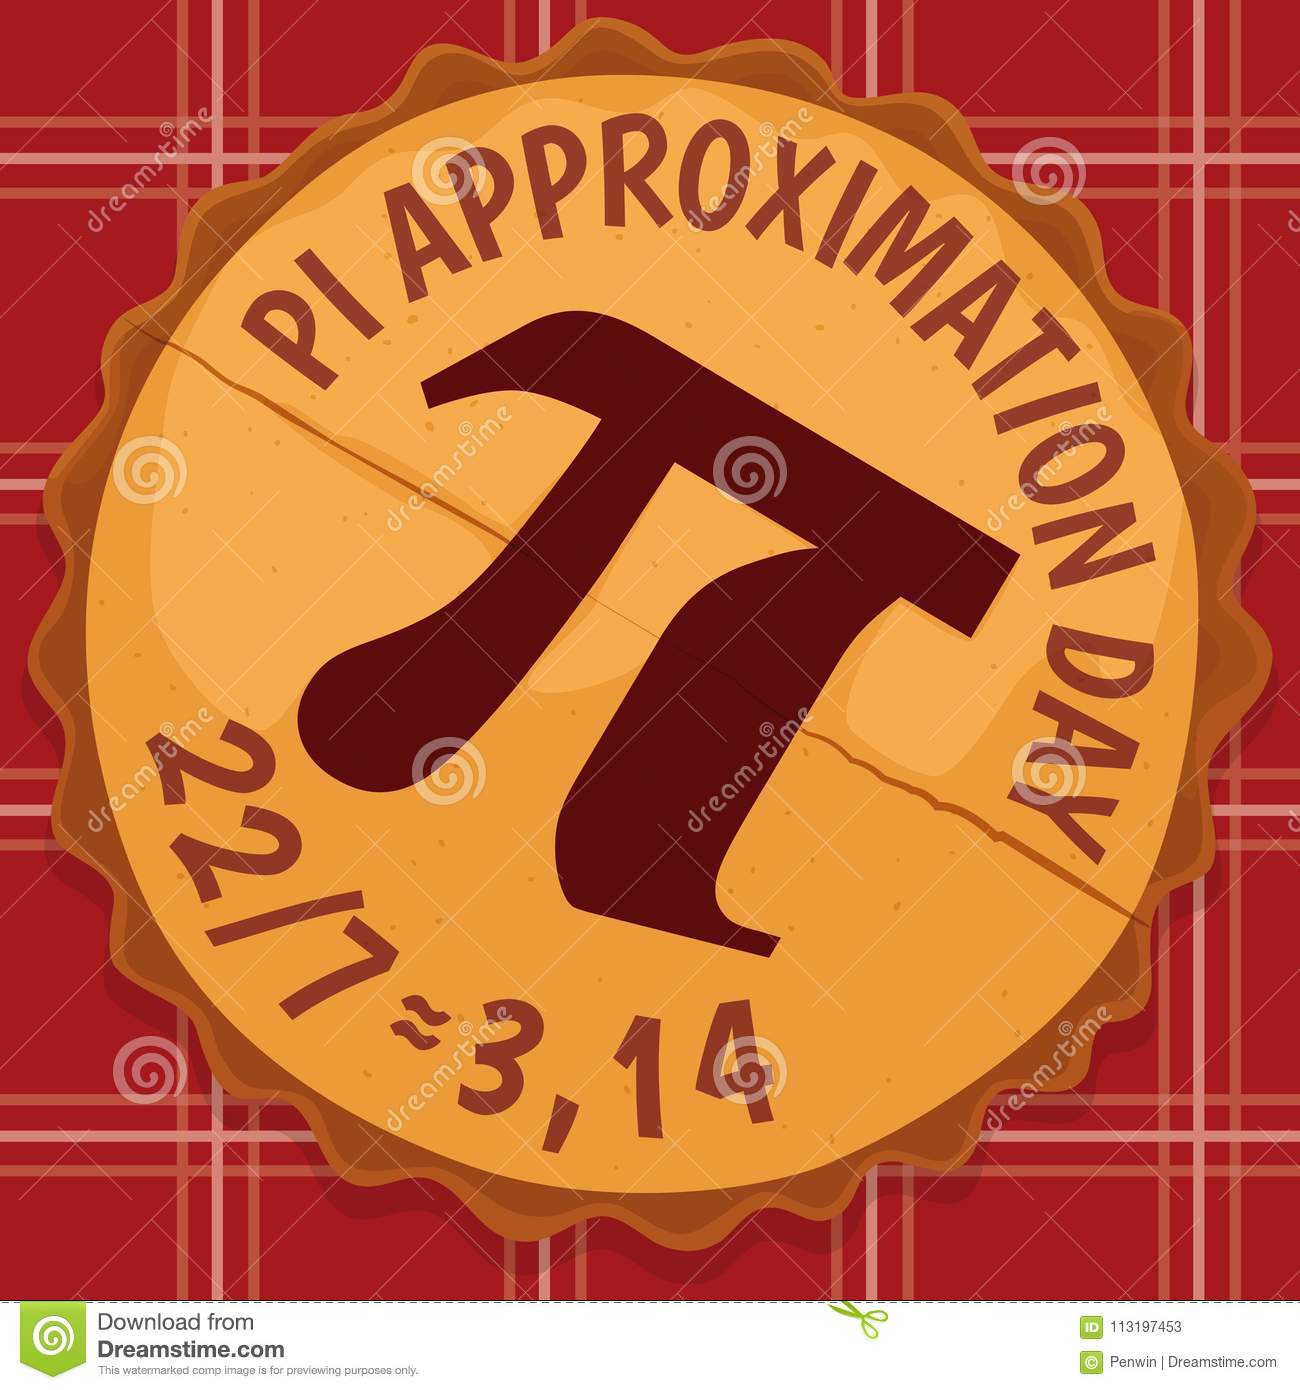 Delicious Pie With Pi Symbol For Pi Approximation Day Vector